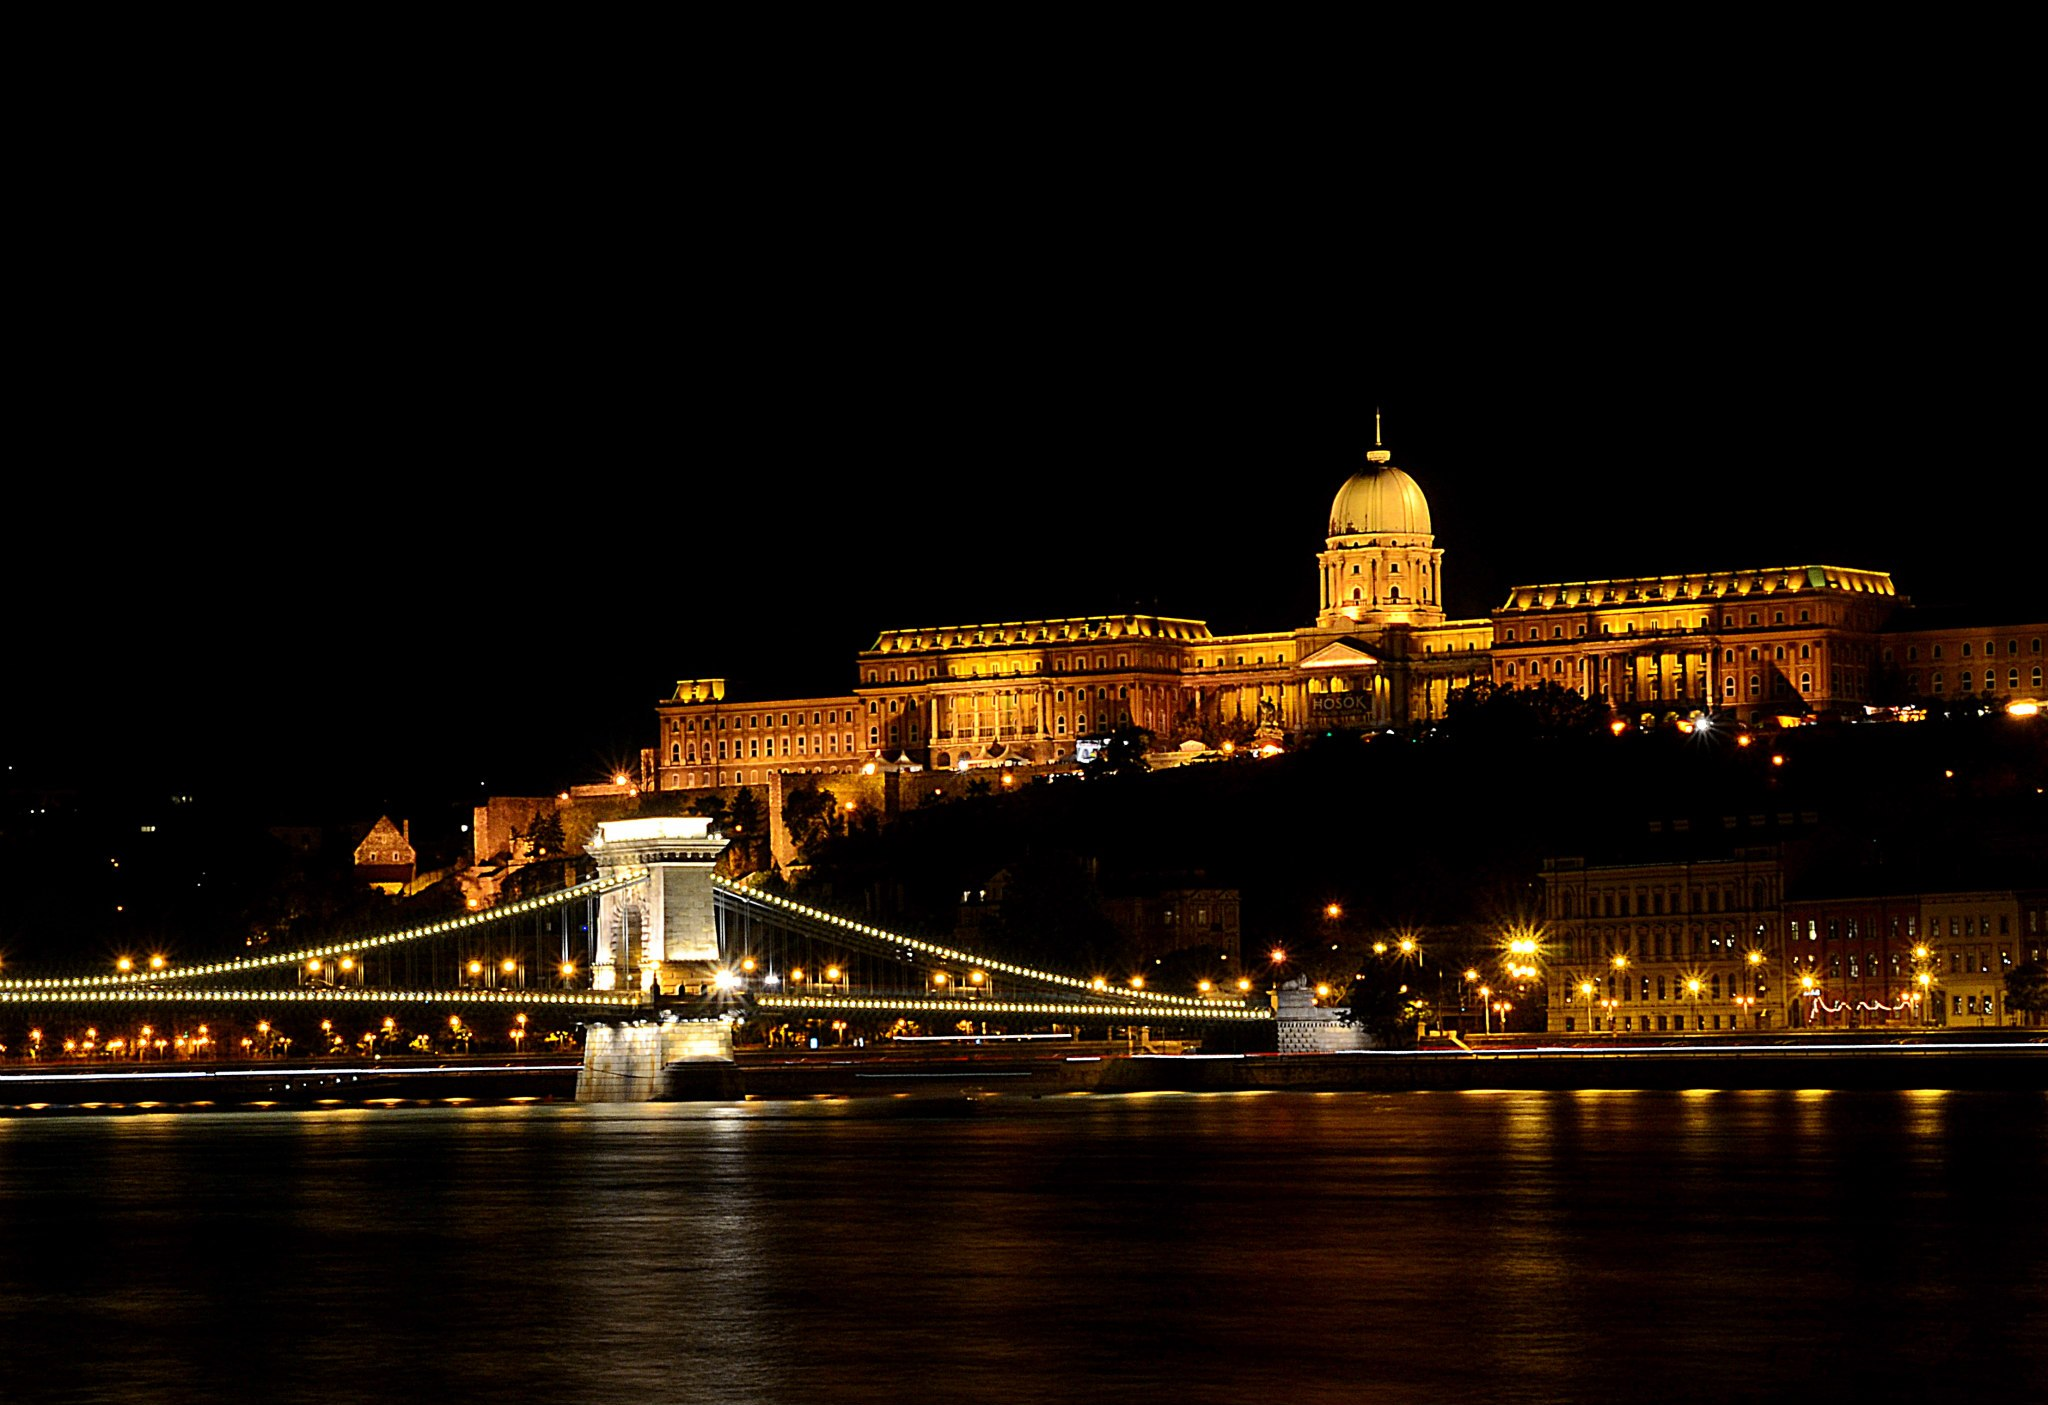 Modern view of the Buda Castle and the Chain Bridge